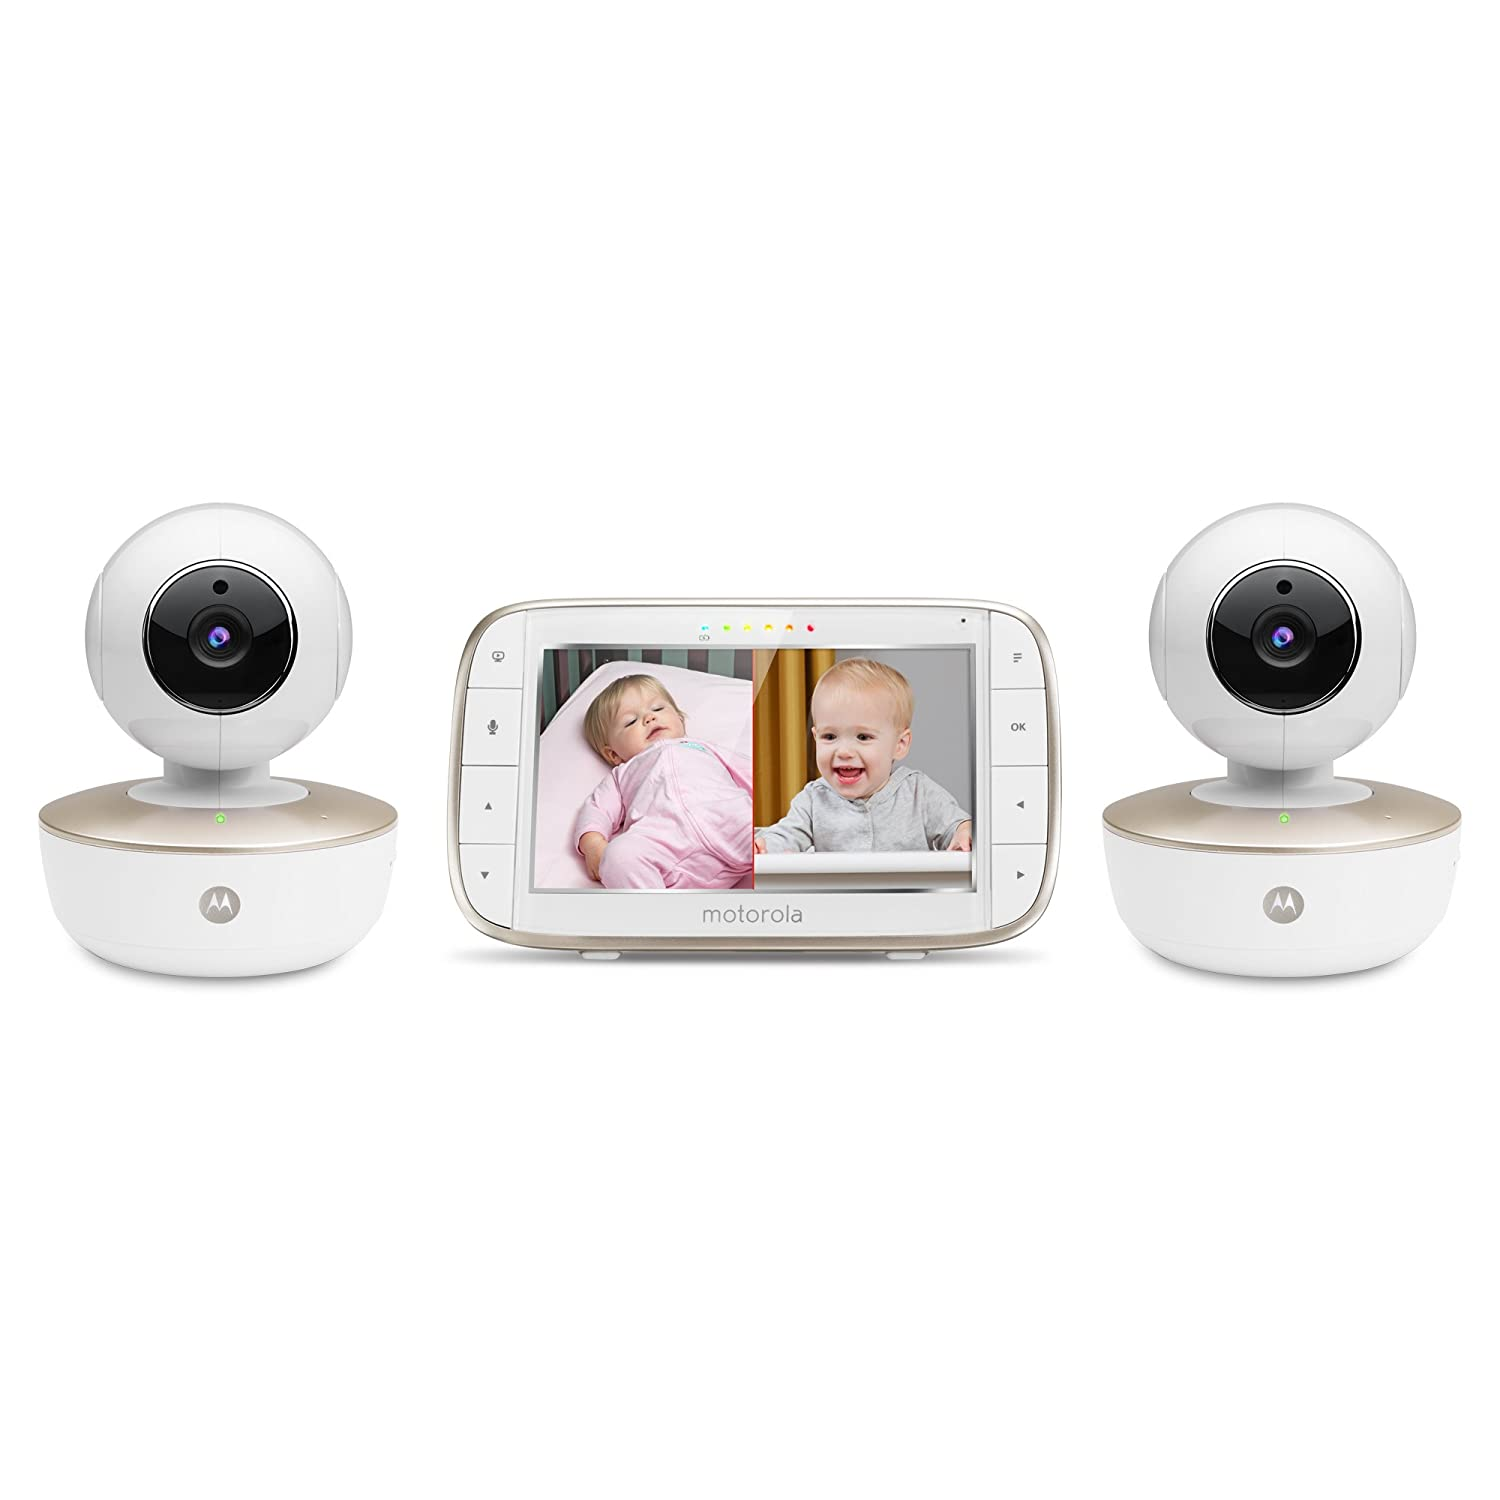 """Motorola MBP855CONNECT-2 Portable 5"""" Video Baby Monitor with Wi-Fi Viewing, 2 Rechargeable Cameras, Remote Pan, Tilt, Zoom, Two-Way Audio, and Room Temperature Display"""